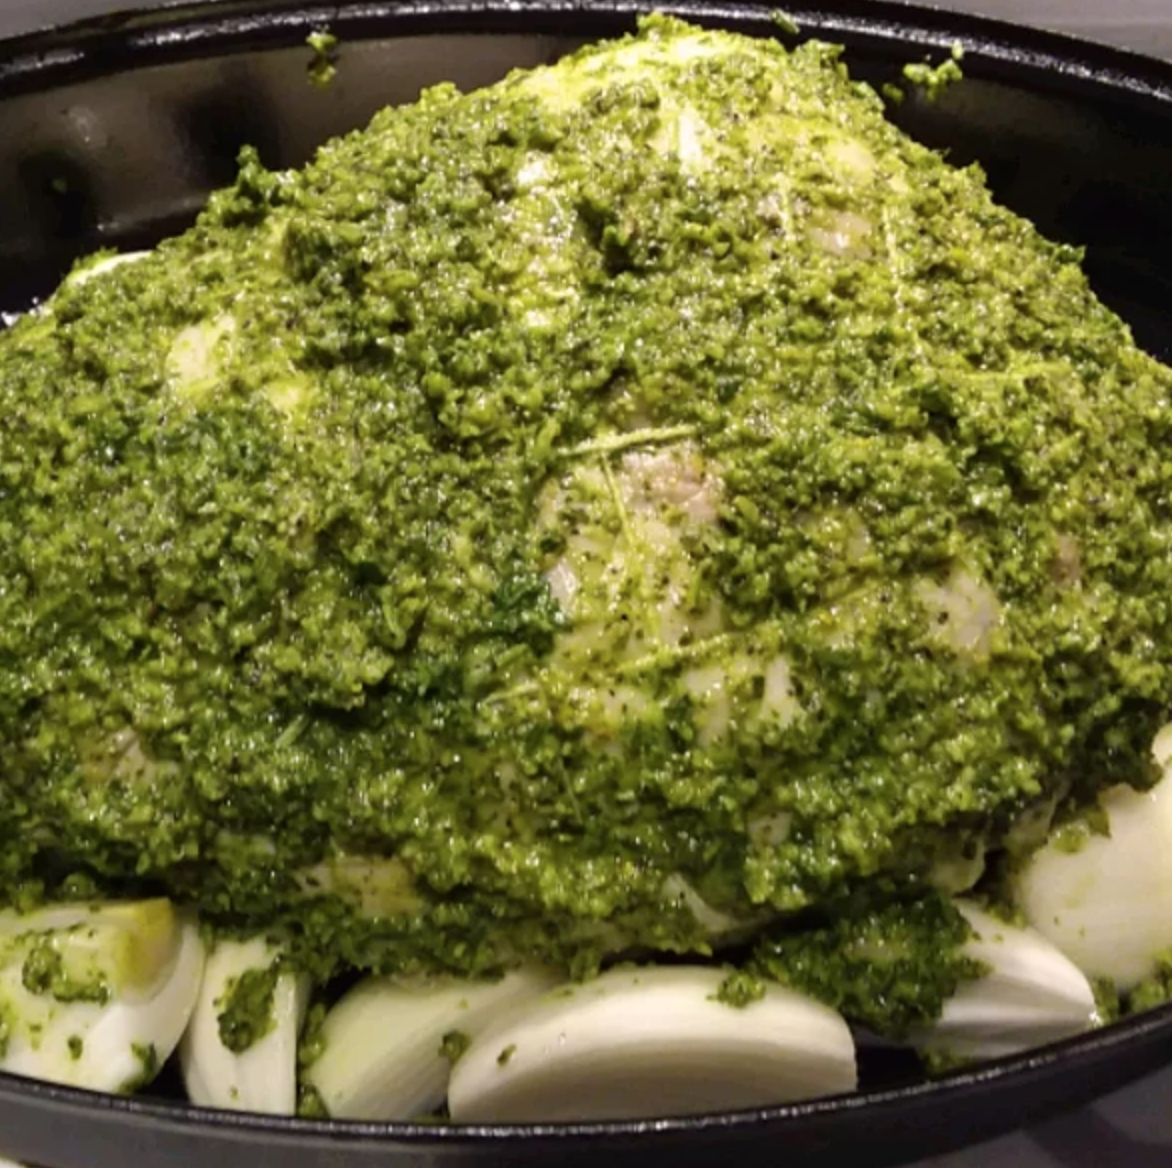 This holiday-perfect leg of lamb is extra juicy and delicious, as it's marinated overnight in yogurt, fresh rosemary, fresh parsley, garlic, and lemons. Make sure to start this recipe at least a day before cooking.